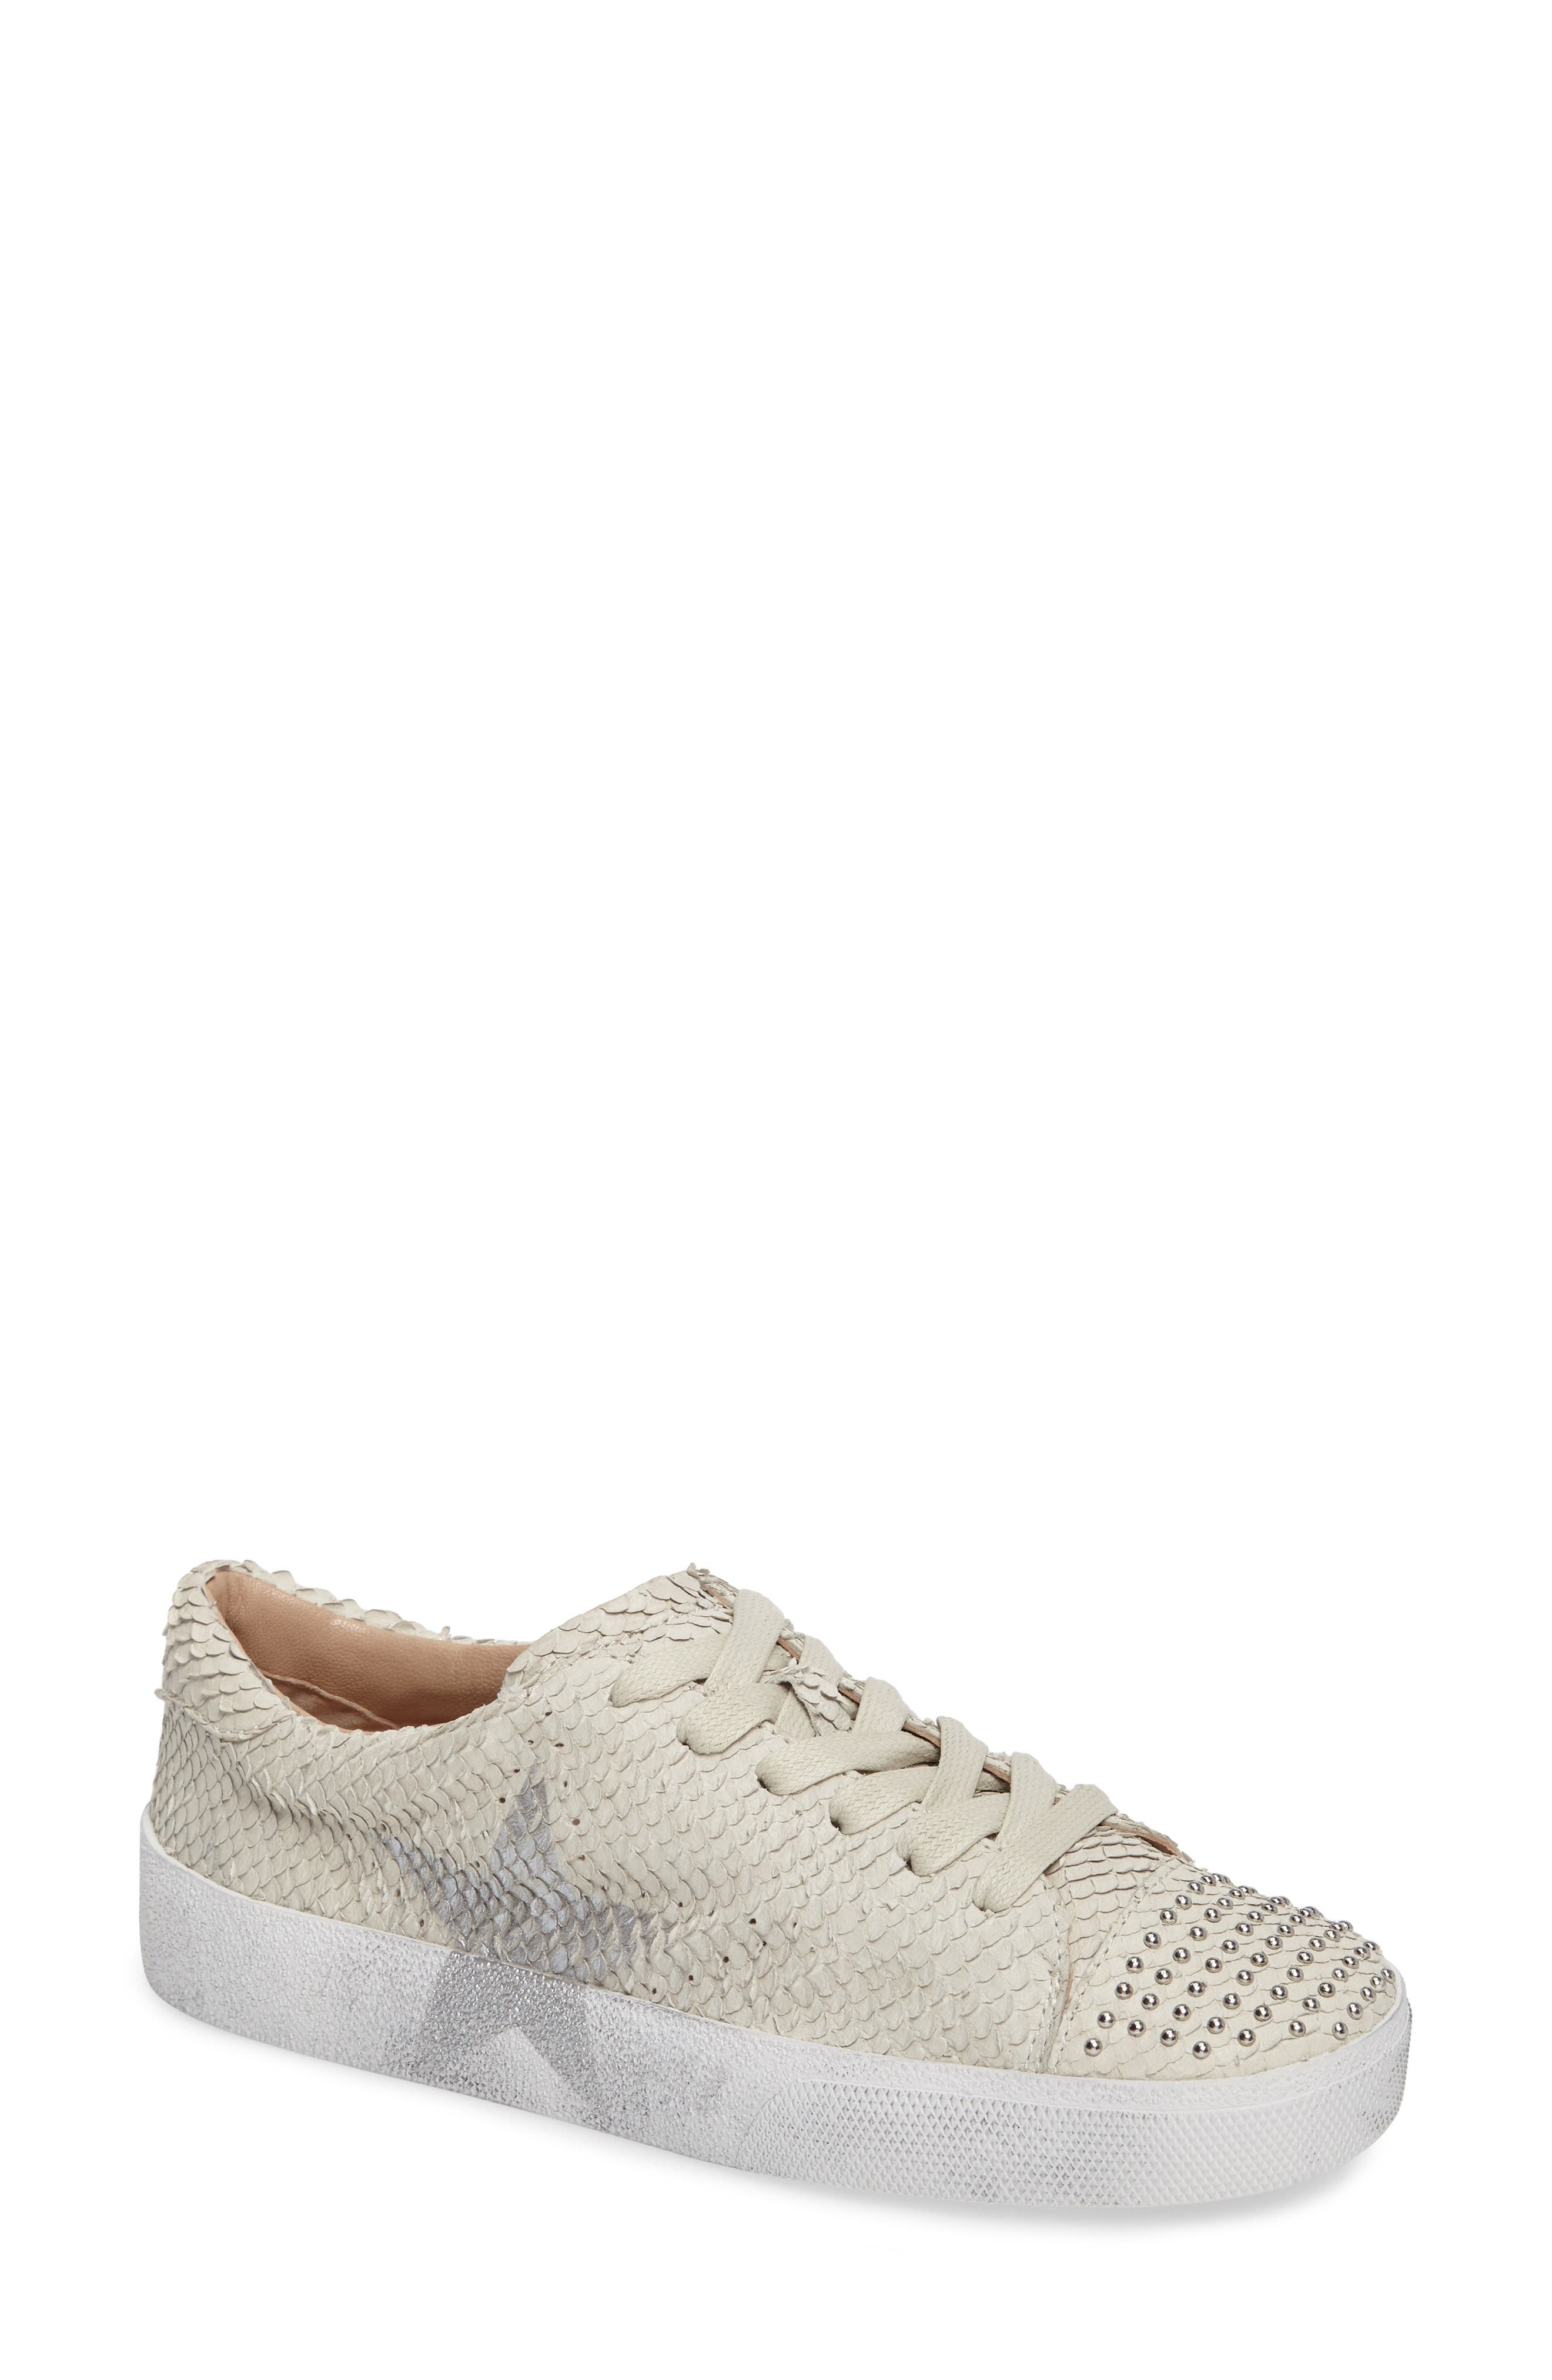 Catcall Studded Sneaker,                         Main,                         color, Vodka/ Silver